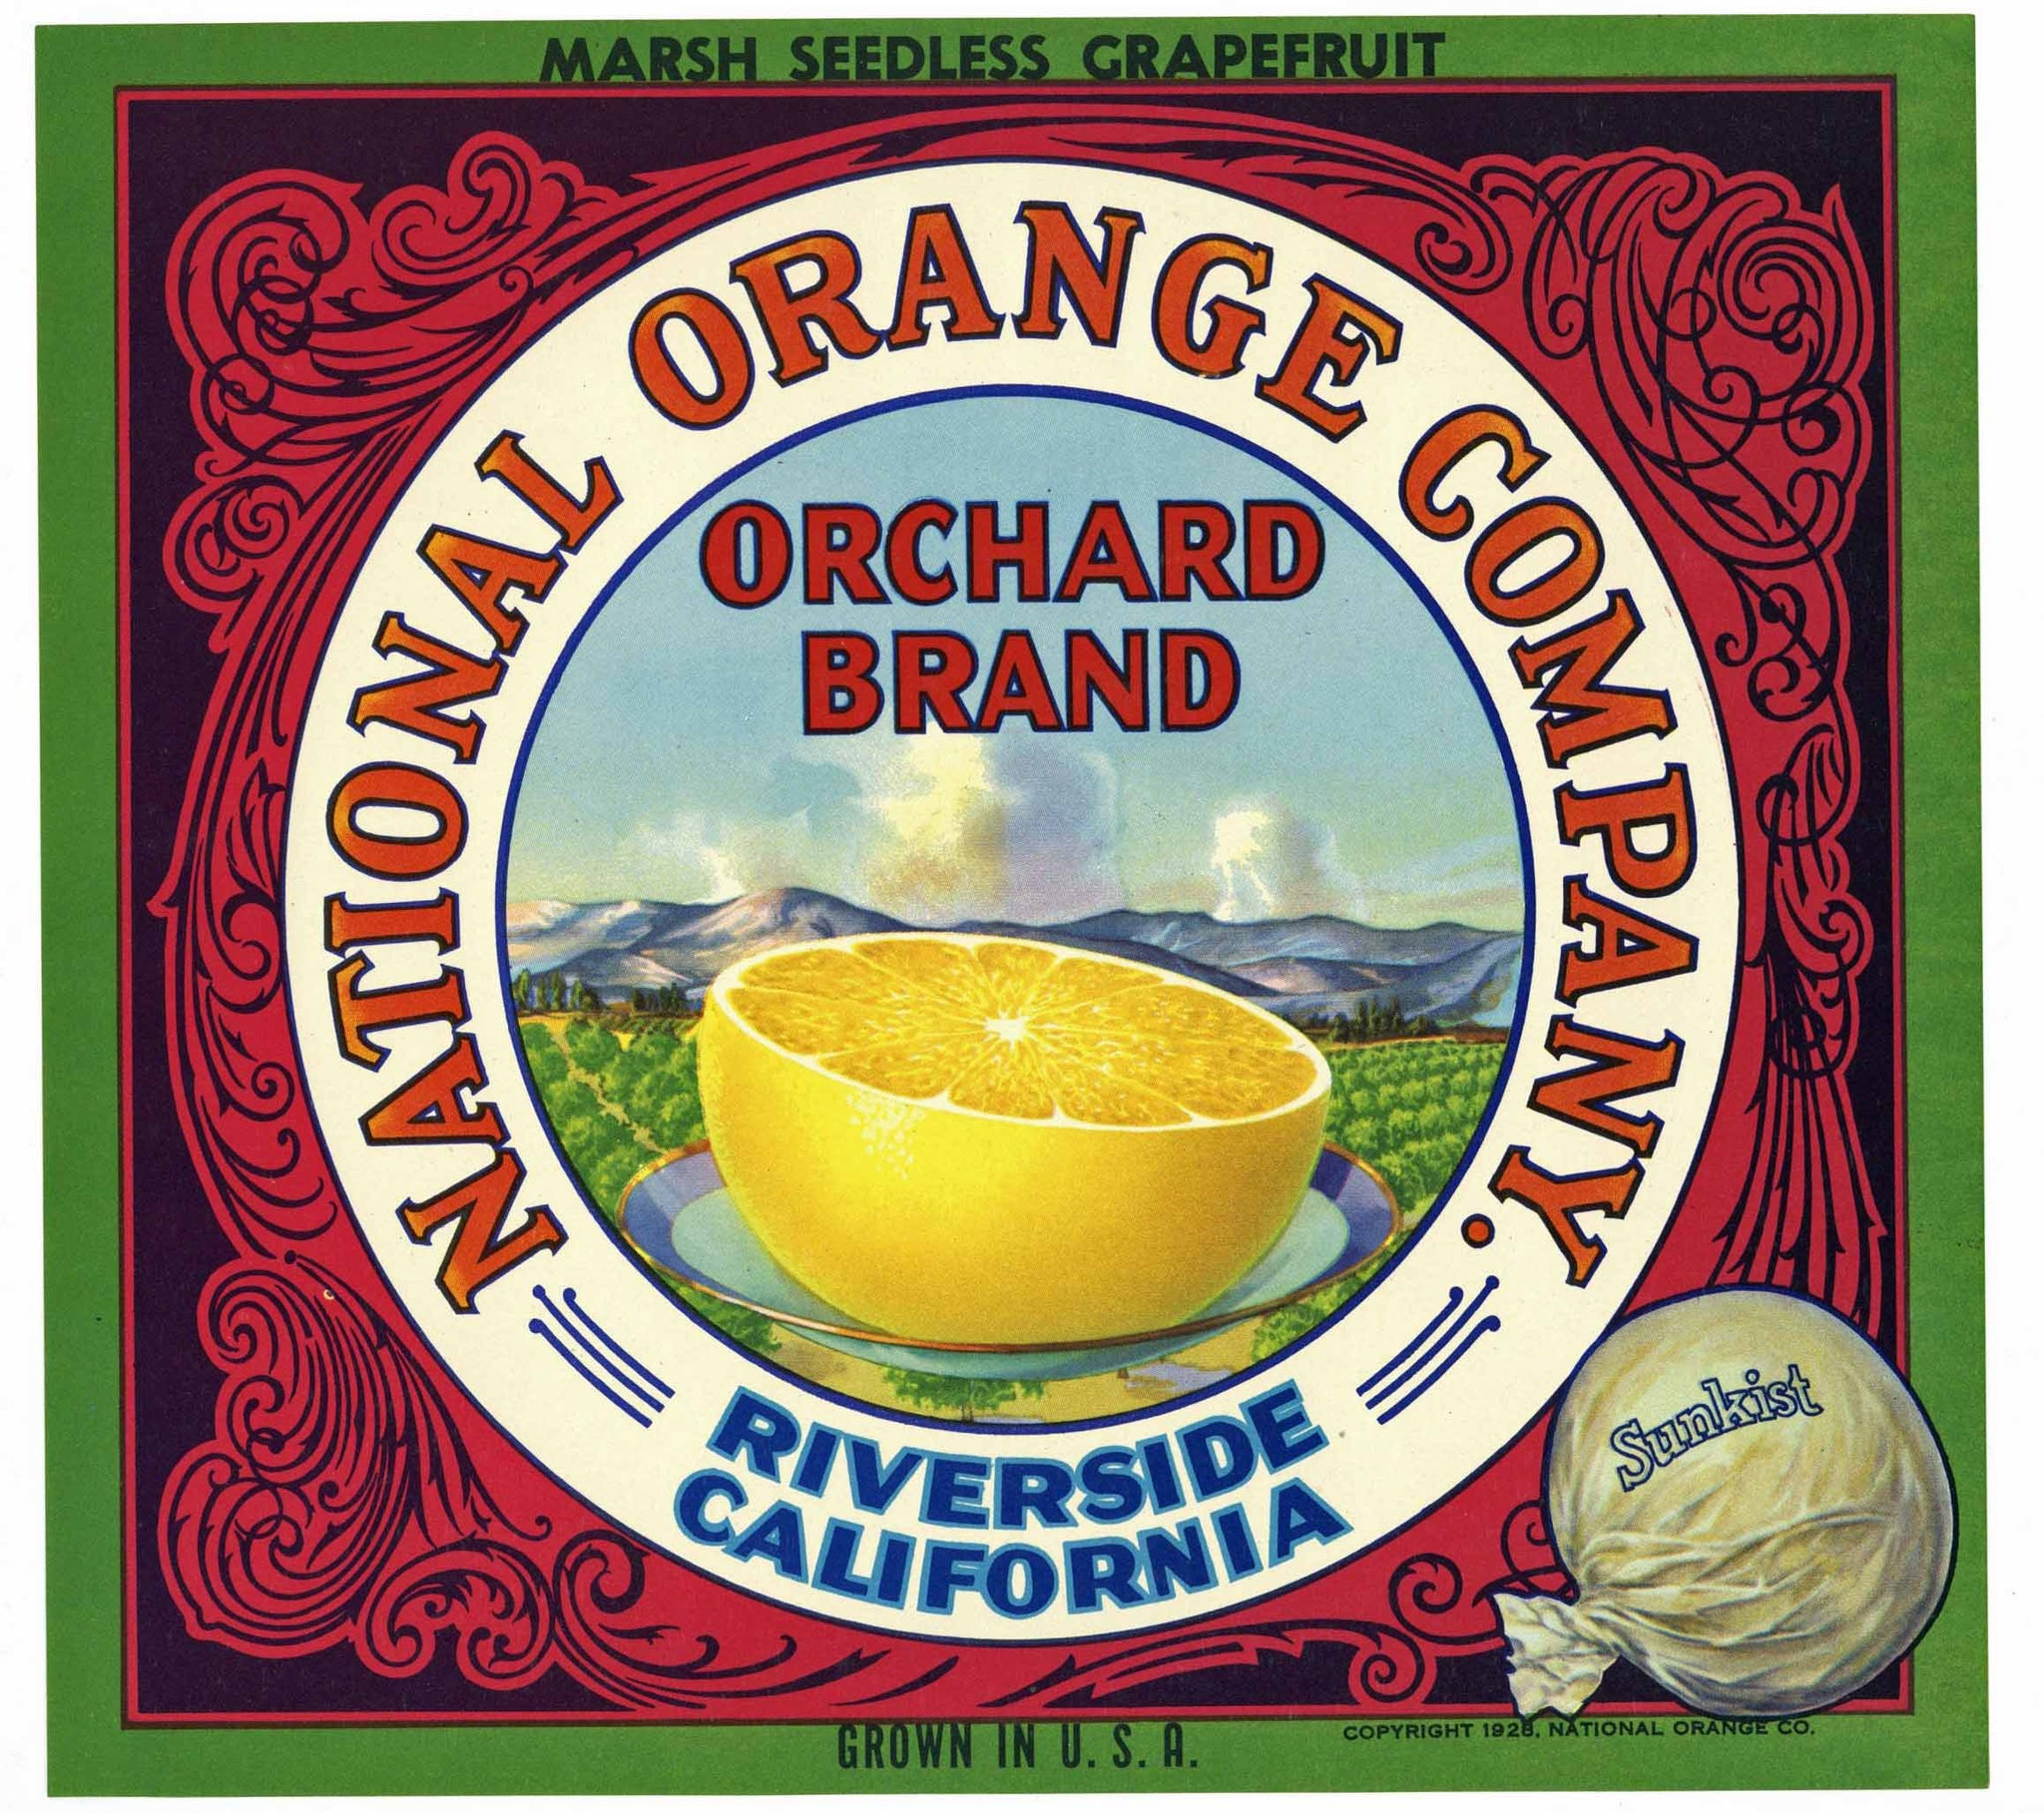 Orchard Brand Vintage Riverside Grapefruit Crate Label